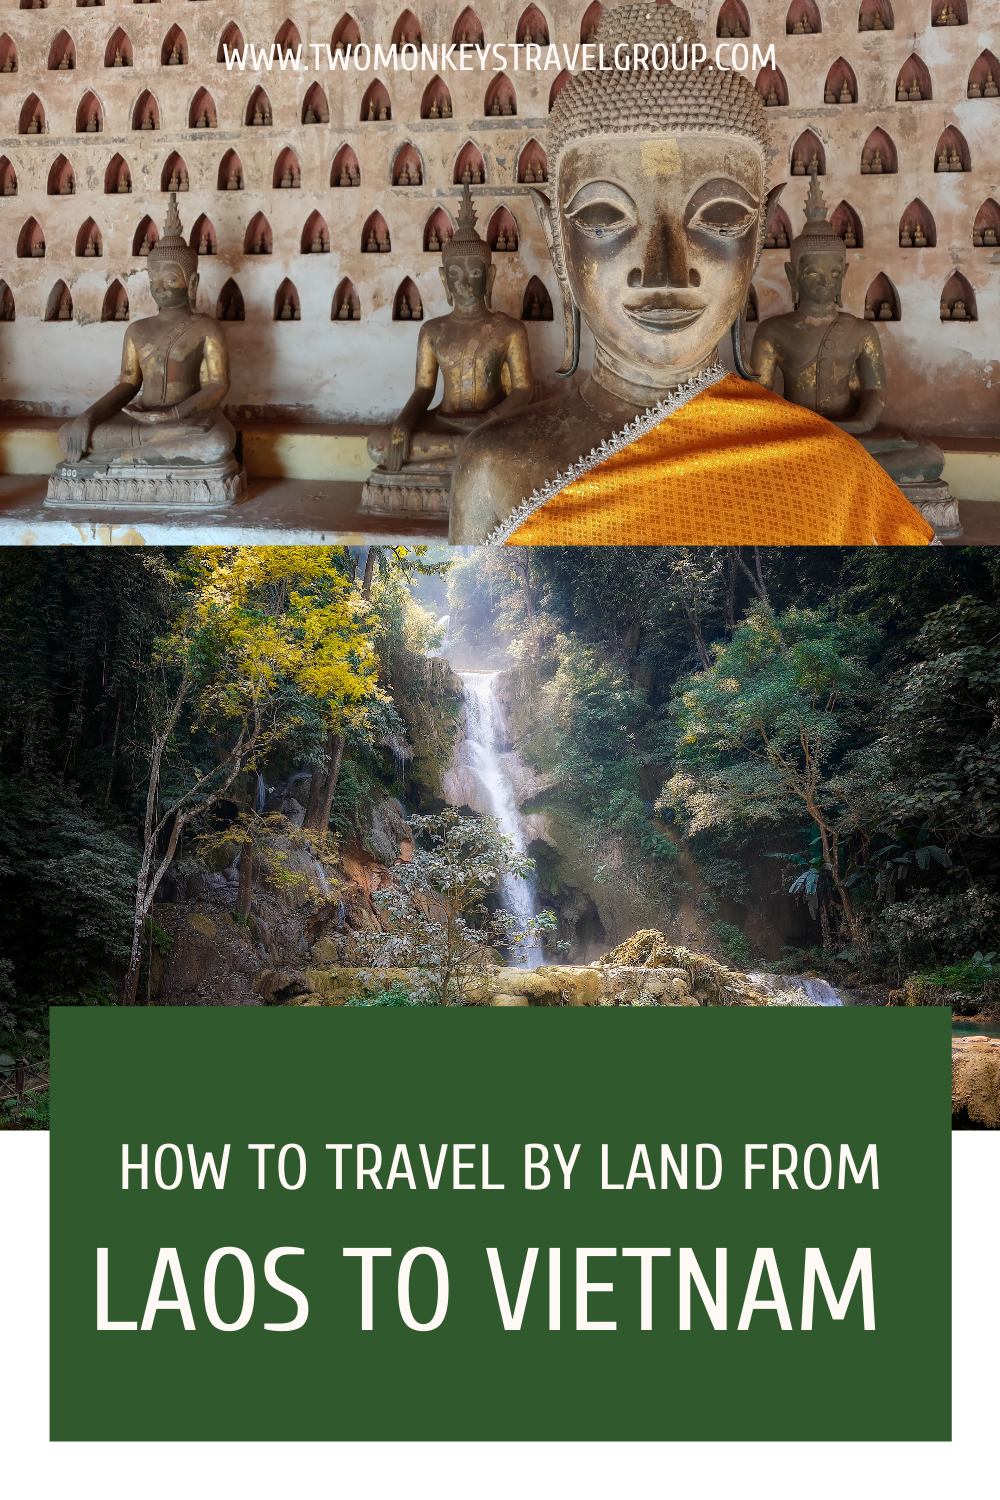 How to Travel by Land from Laos to Vietnam (A Backpacker's Guide)